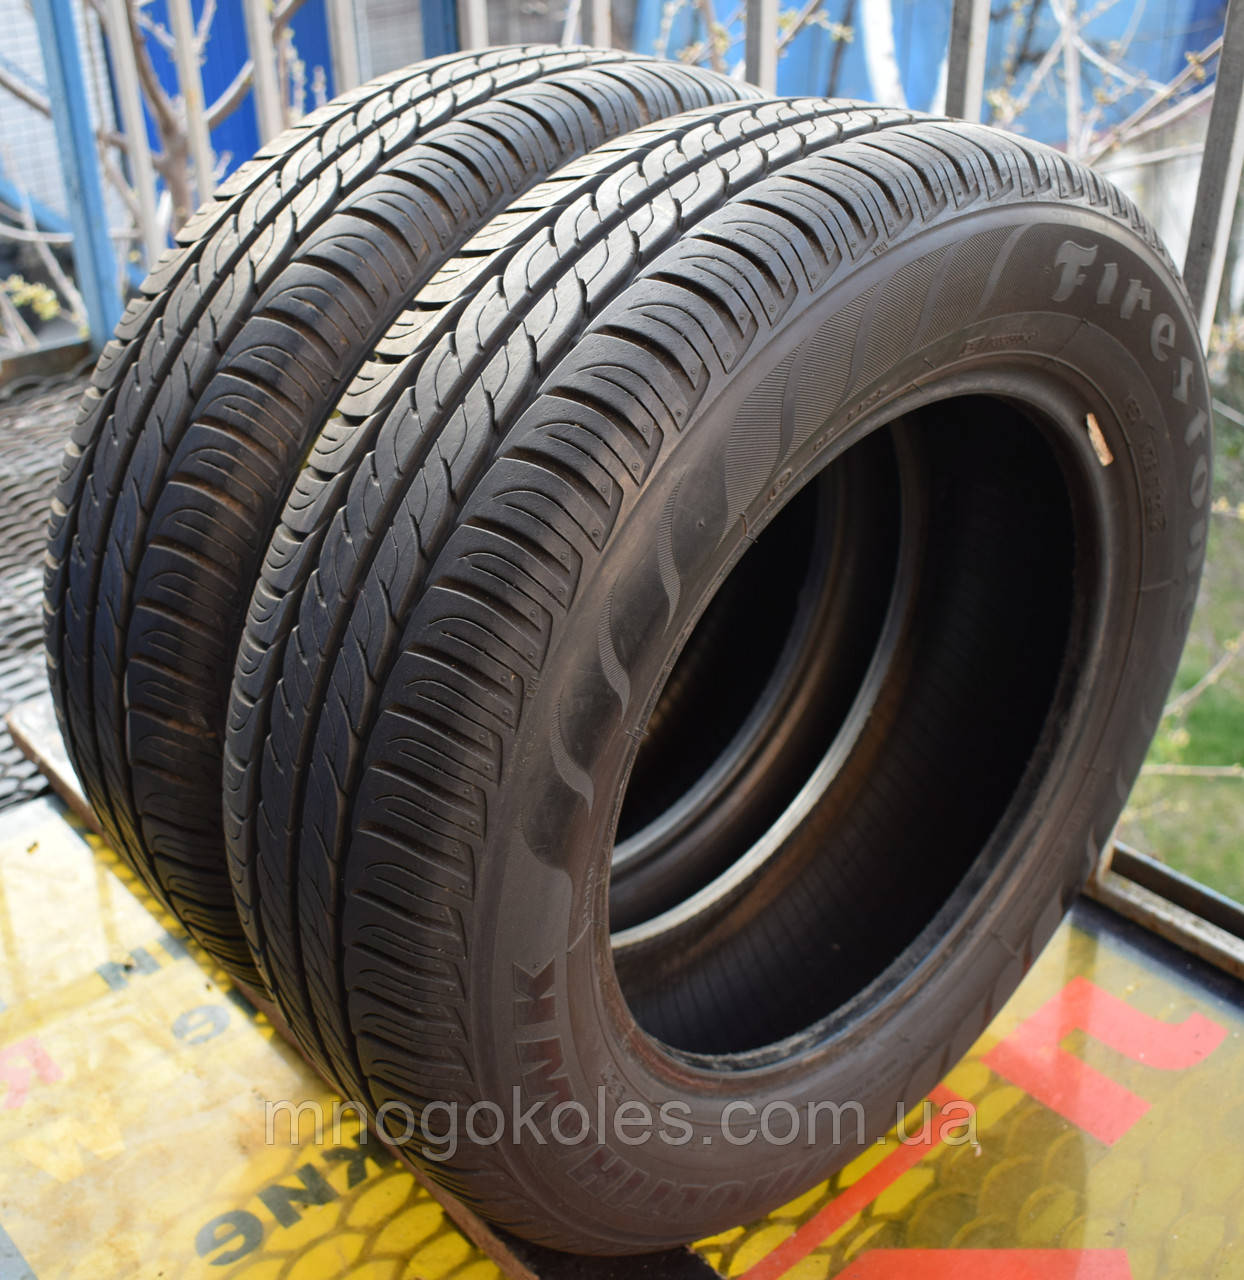 Шины б/у 175/65 R14 Firestone MultiHawk, ЛЕТО, 6 мм, пара